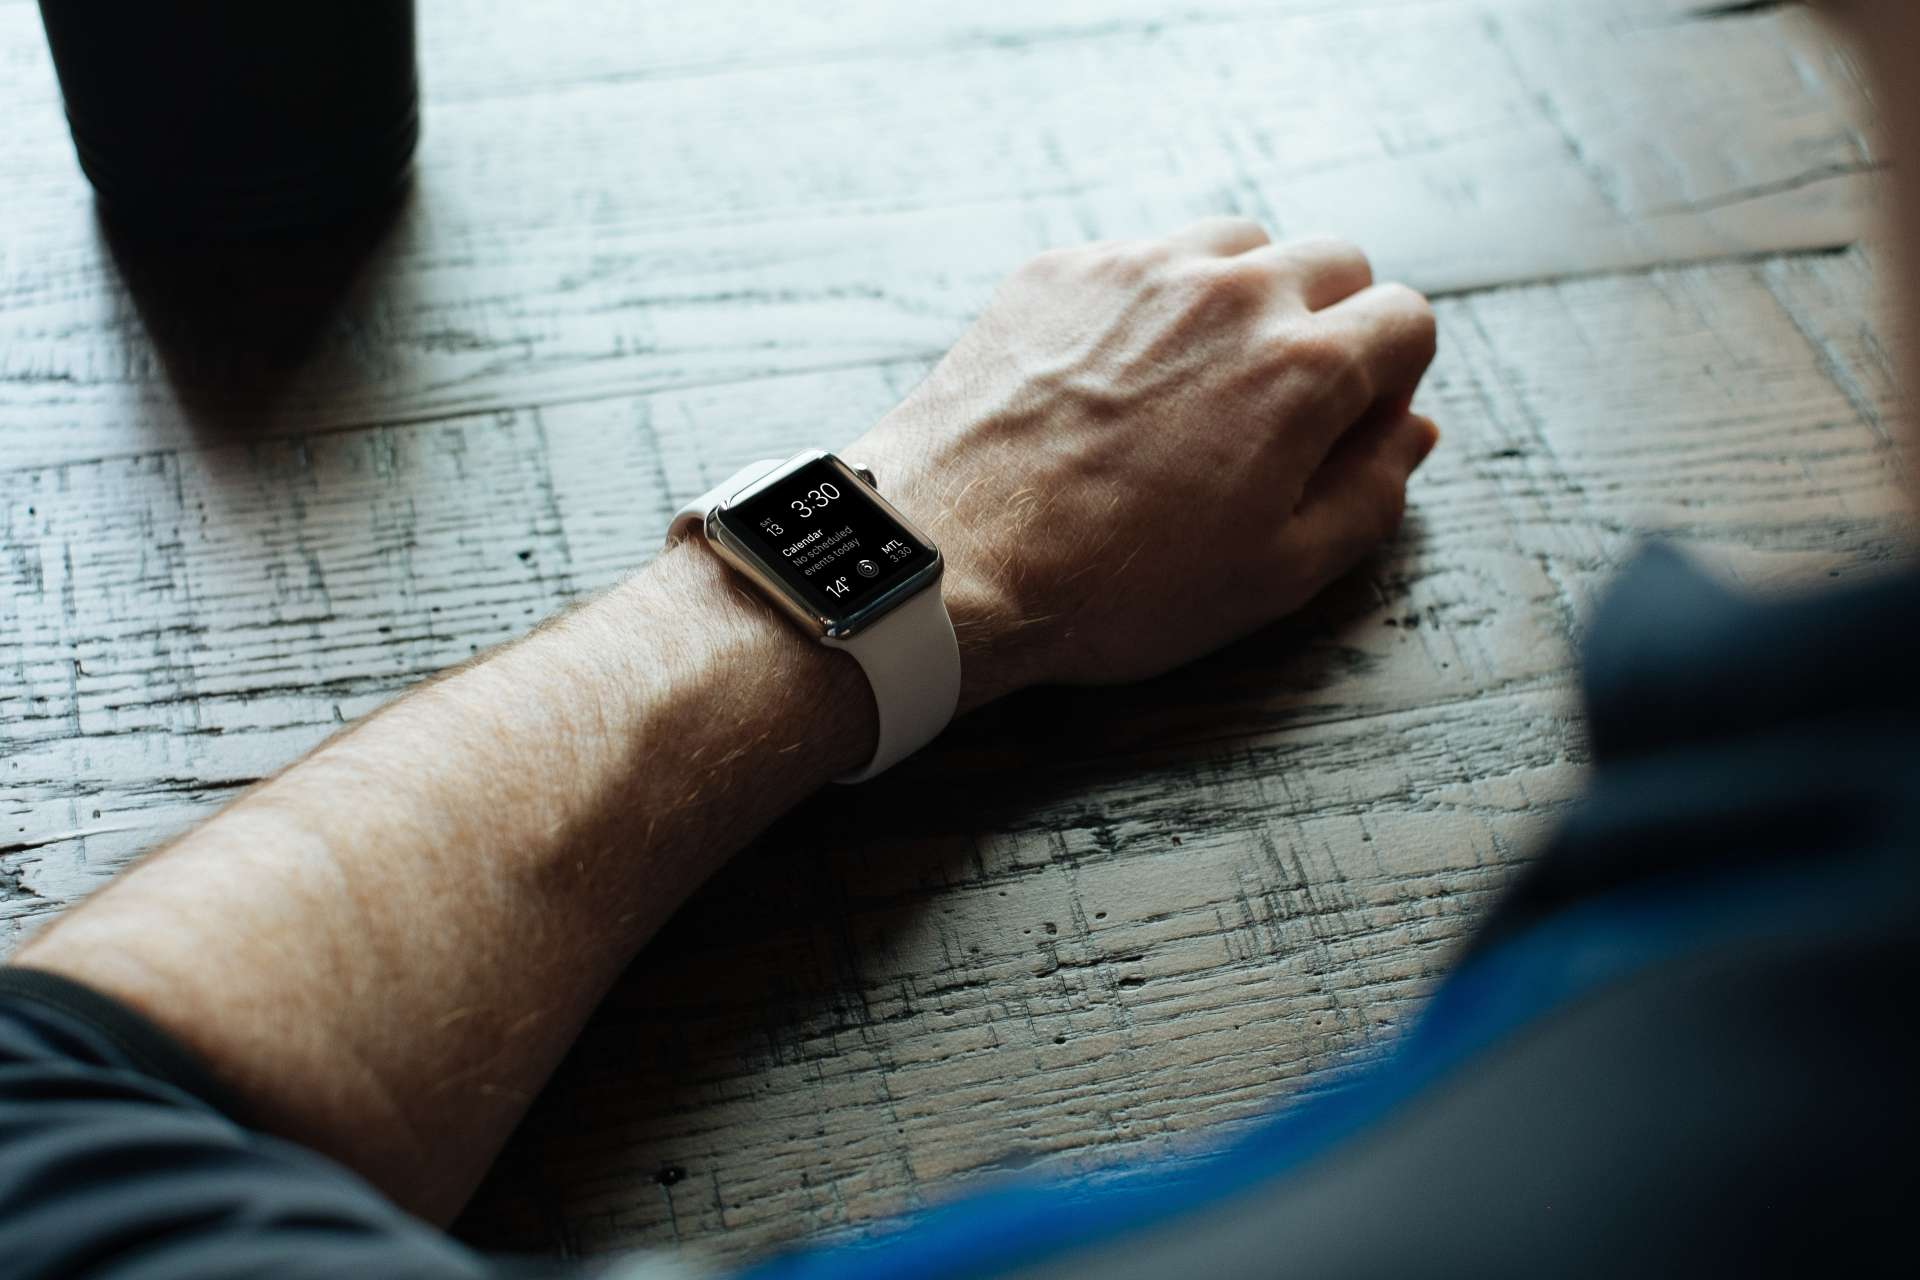 Apple Watch - a fashion accessory or a high-tech innovation?